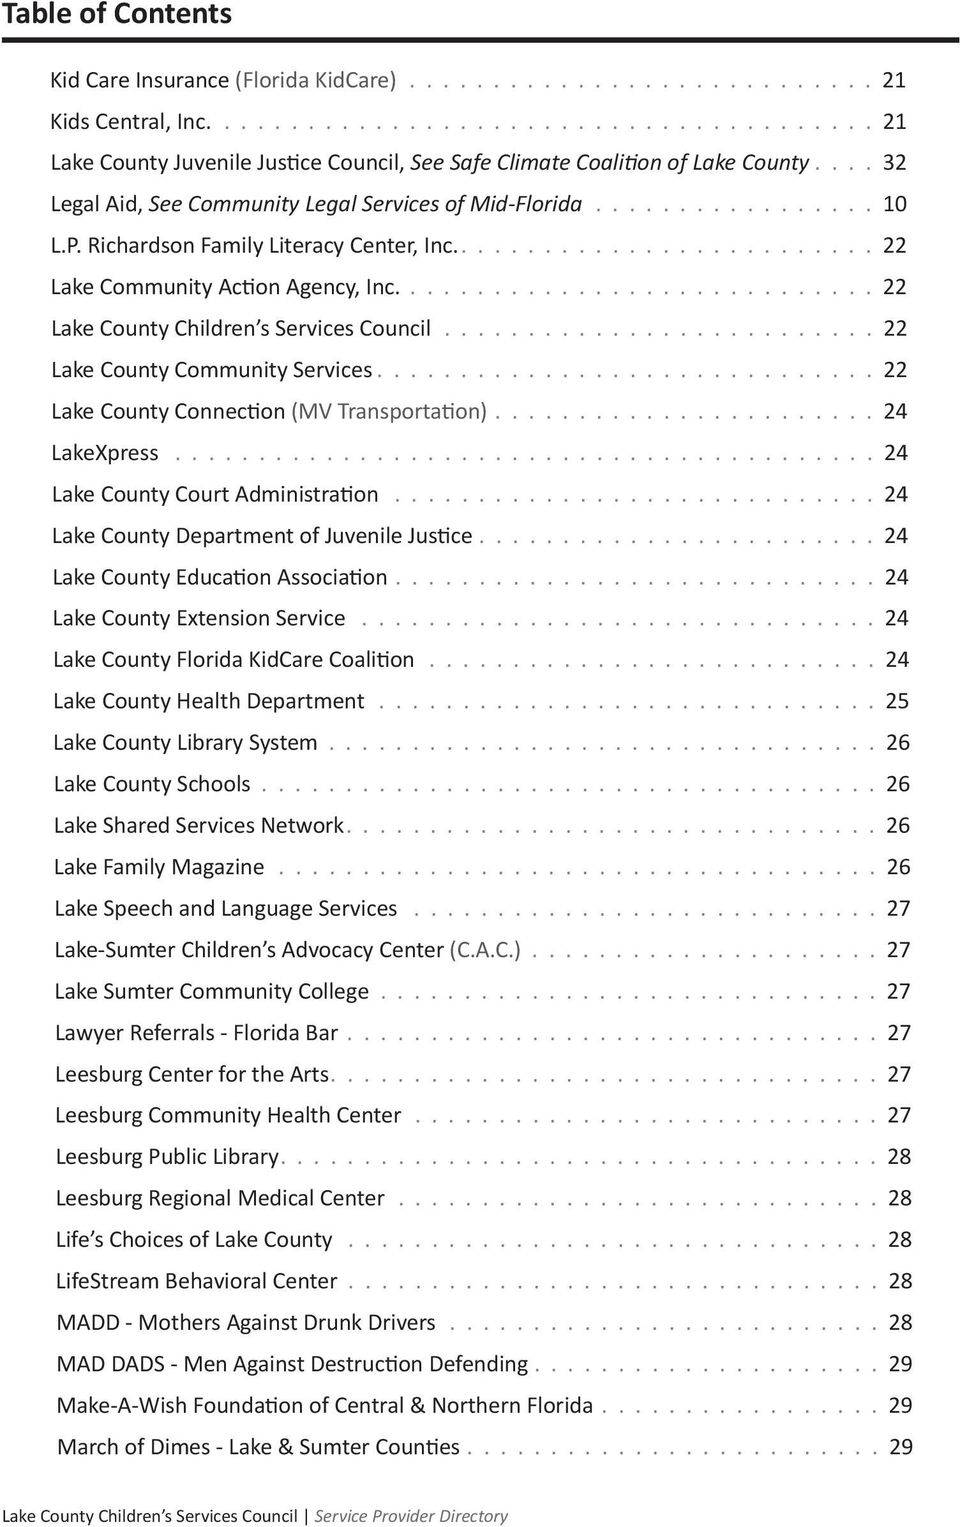 22 Lake County Children s Services Council 22 Lake County Community Services 22 Lake County Connection (MV Transportation) 24 LakeXpress 24 Lake County Court Administration 24 Lake County Department